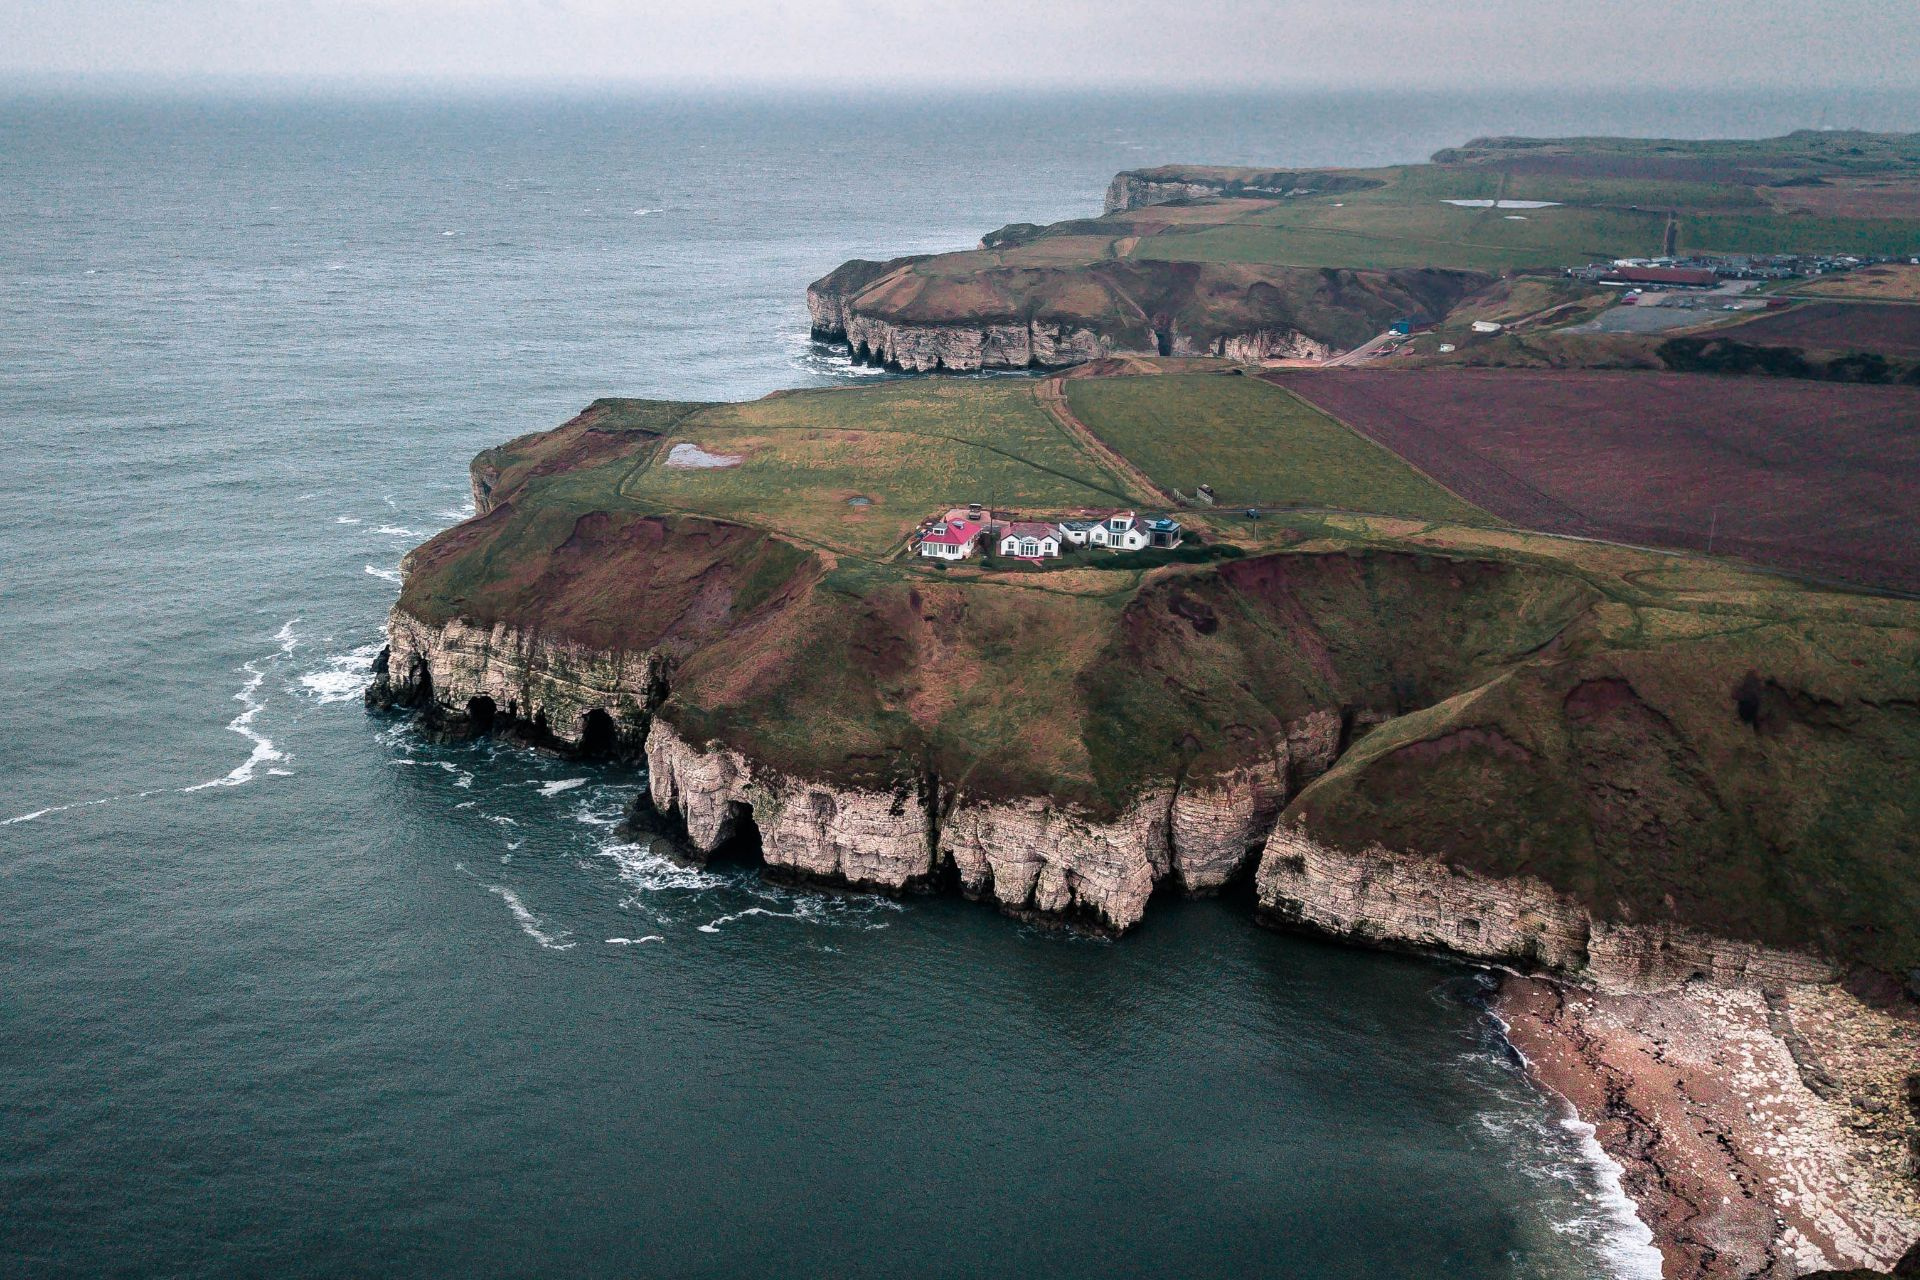 houses-sitting-on-edge-of-cliff-by-the-sea-on-a-dark-moody-autumn-winter-day-in-britain-at-flamborough-head